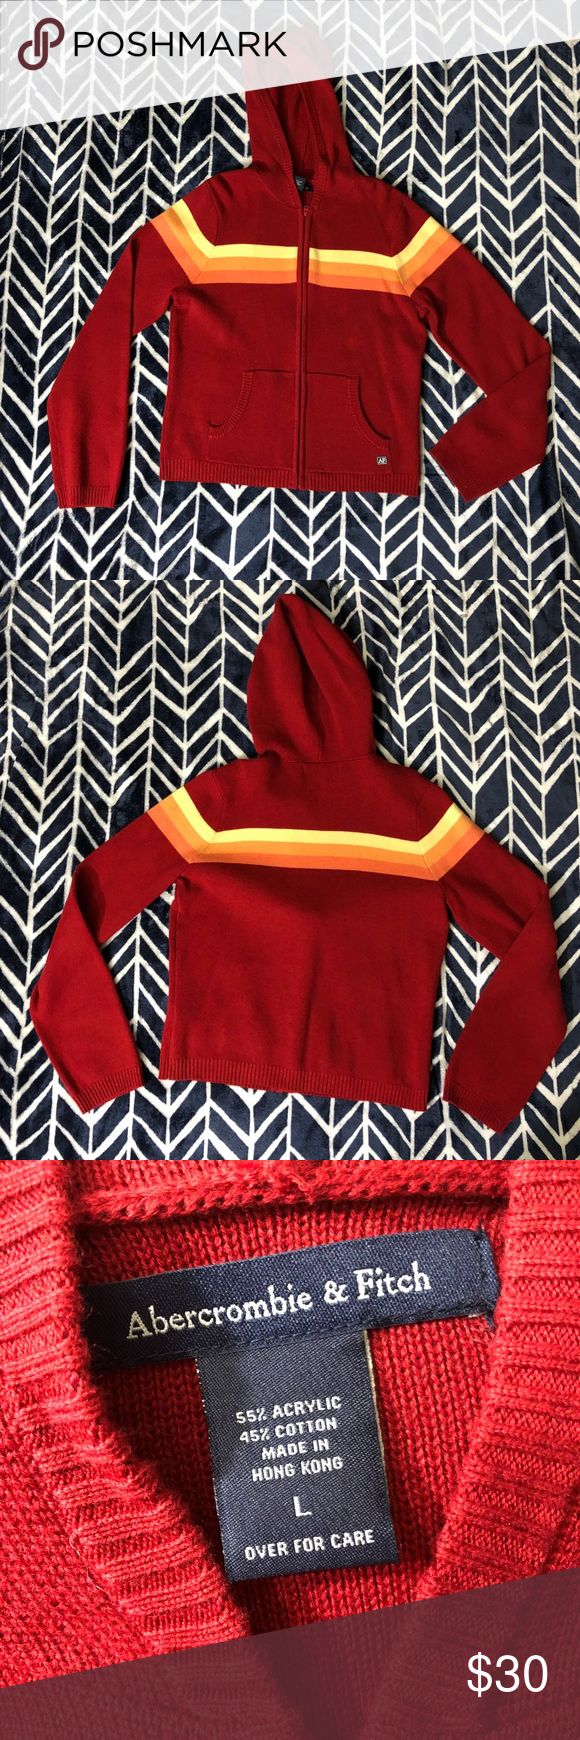 """Abercrombie & Fitch Hooded Sweater Woman's size large Abercrombie and Fitch Zip Up Hooded Sweater. Like new. No fading, pilling, holes or stains. Red, yellow and orange. The chest measures 18 1/2"""" flat across, the underarm sleeve length is 19 1/2"""" and this is 21 1/2"""" long from the tag. Abercrombie & Fitch Sweaters"""